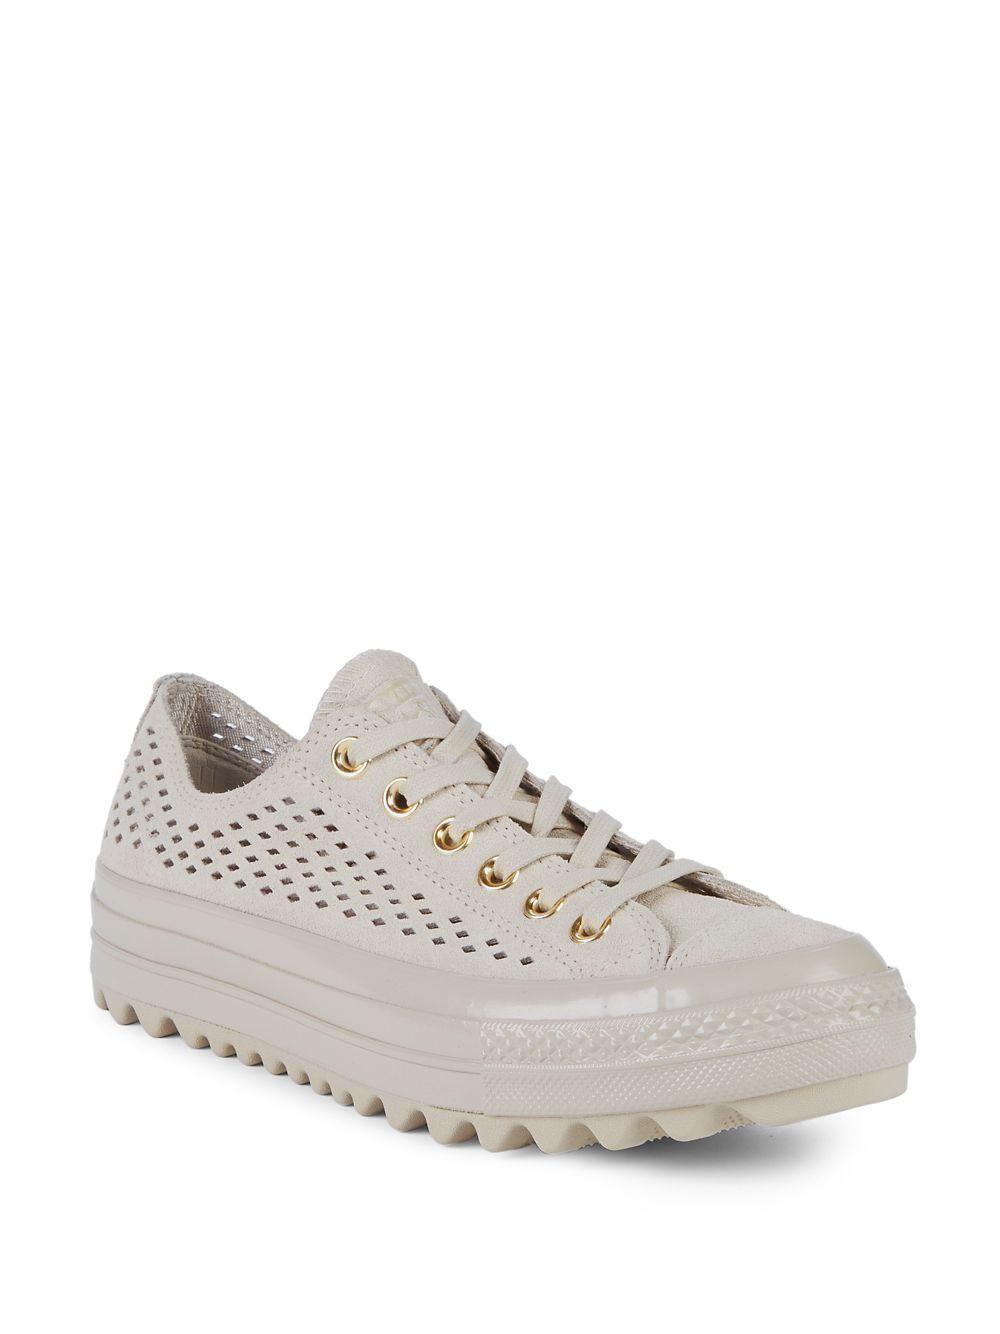 Converse Lift Ripple Ox Perforated Sneakers YywfJh